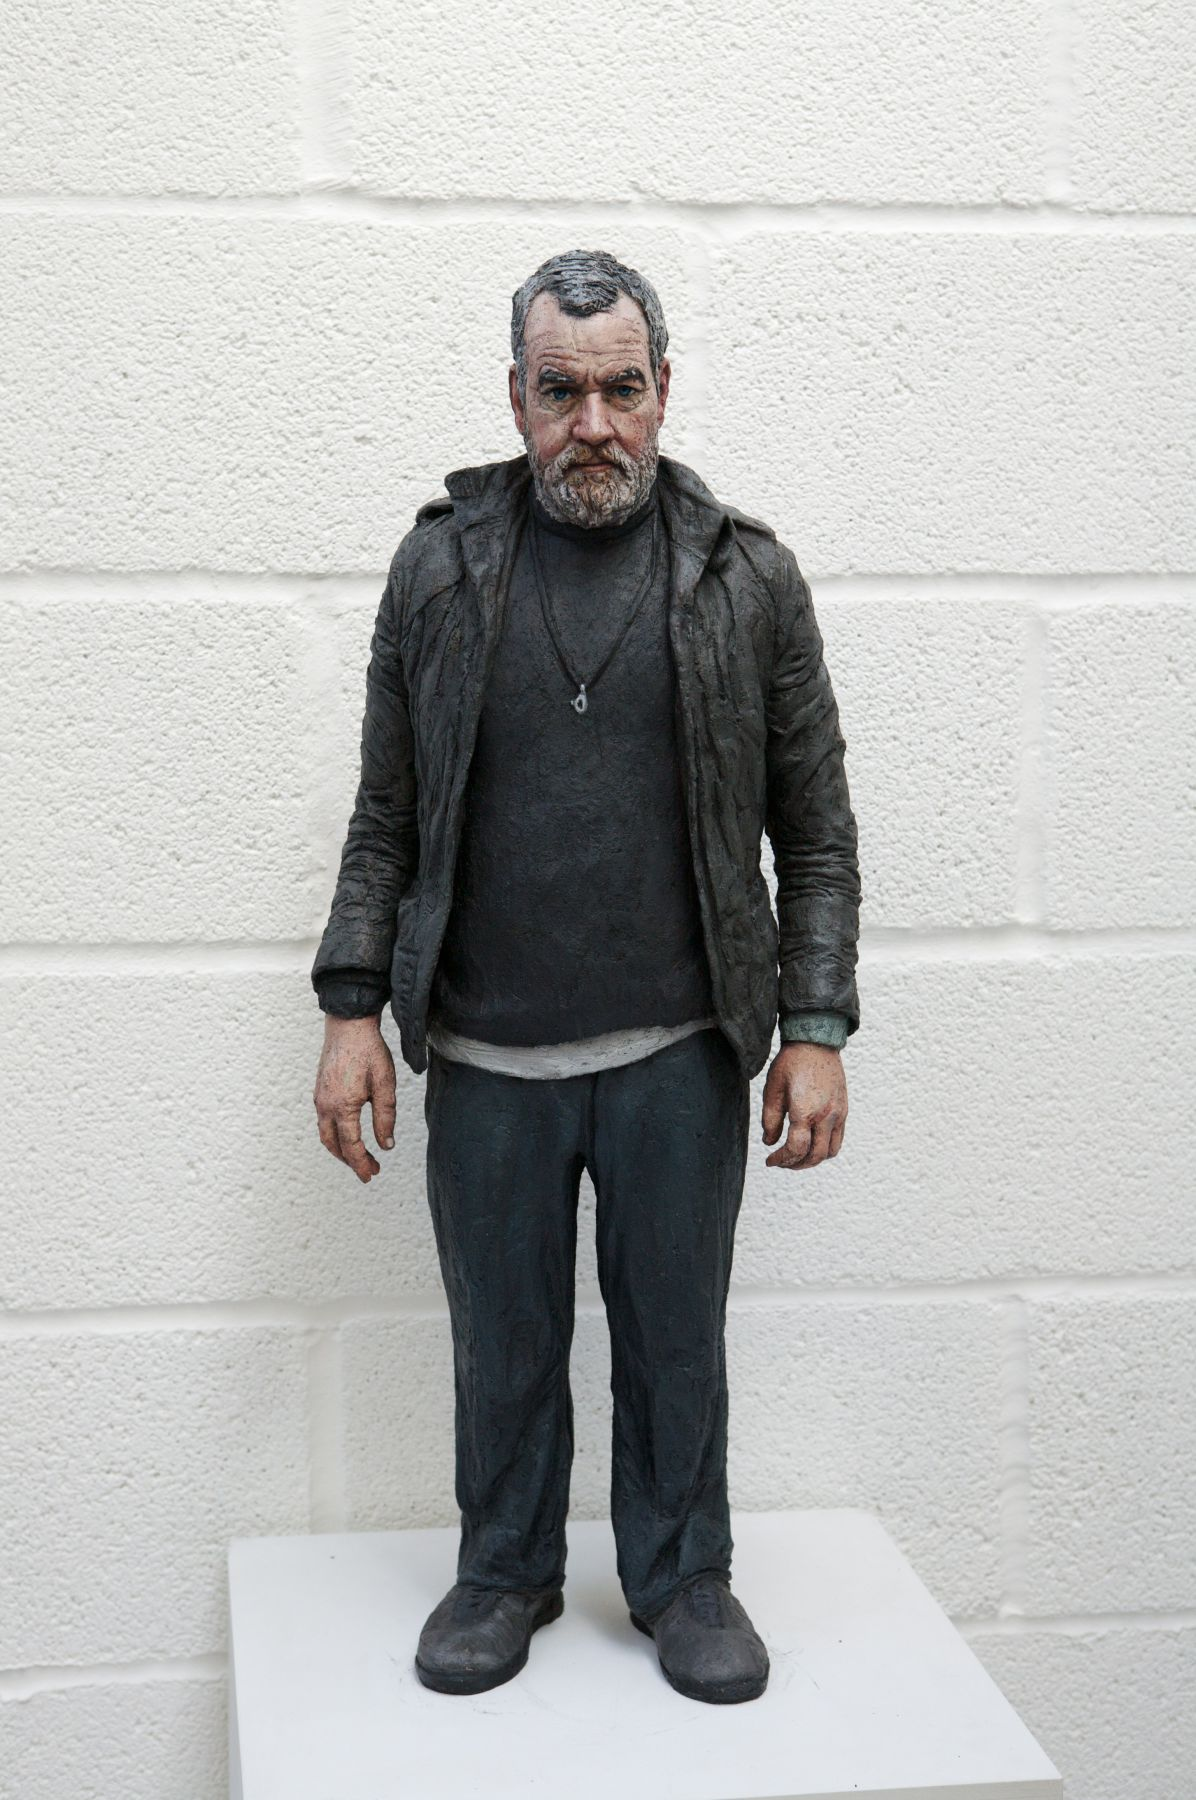 Sean Henry, John (Standing), 2008, bronze, oil paint, 30 x 11 x 8 inches, Edition 5/6